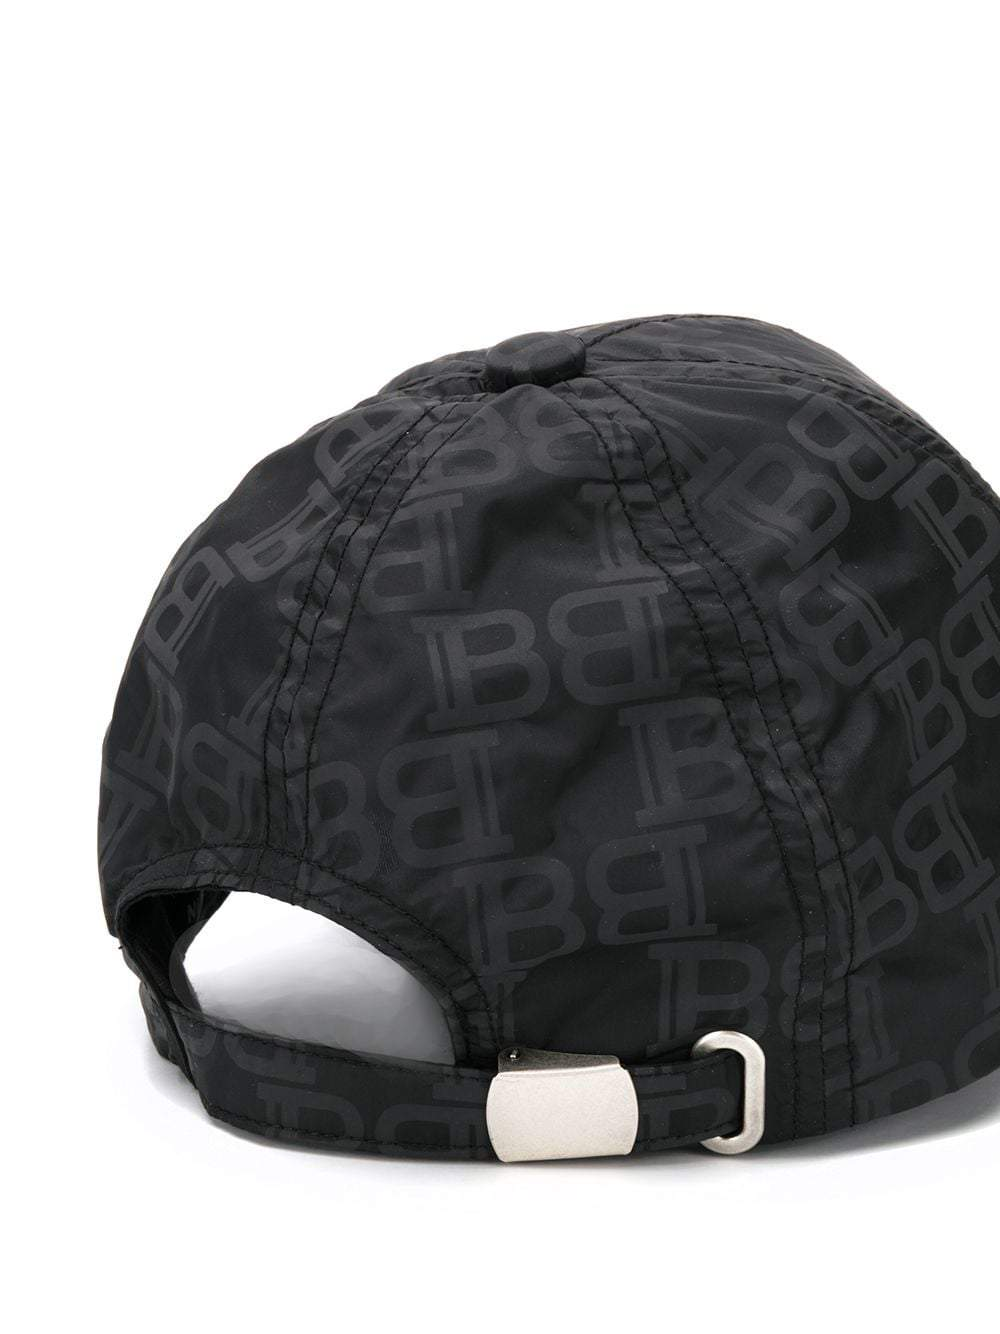 BALMAIN All Over Monogram Print Cap Black